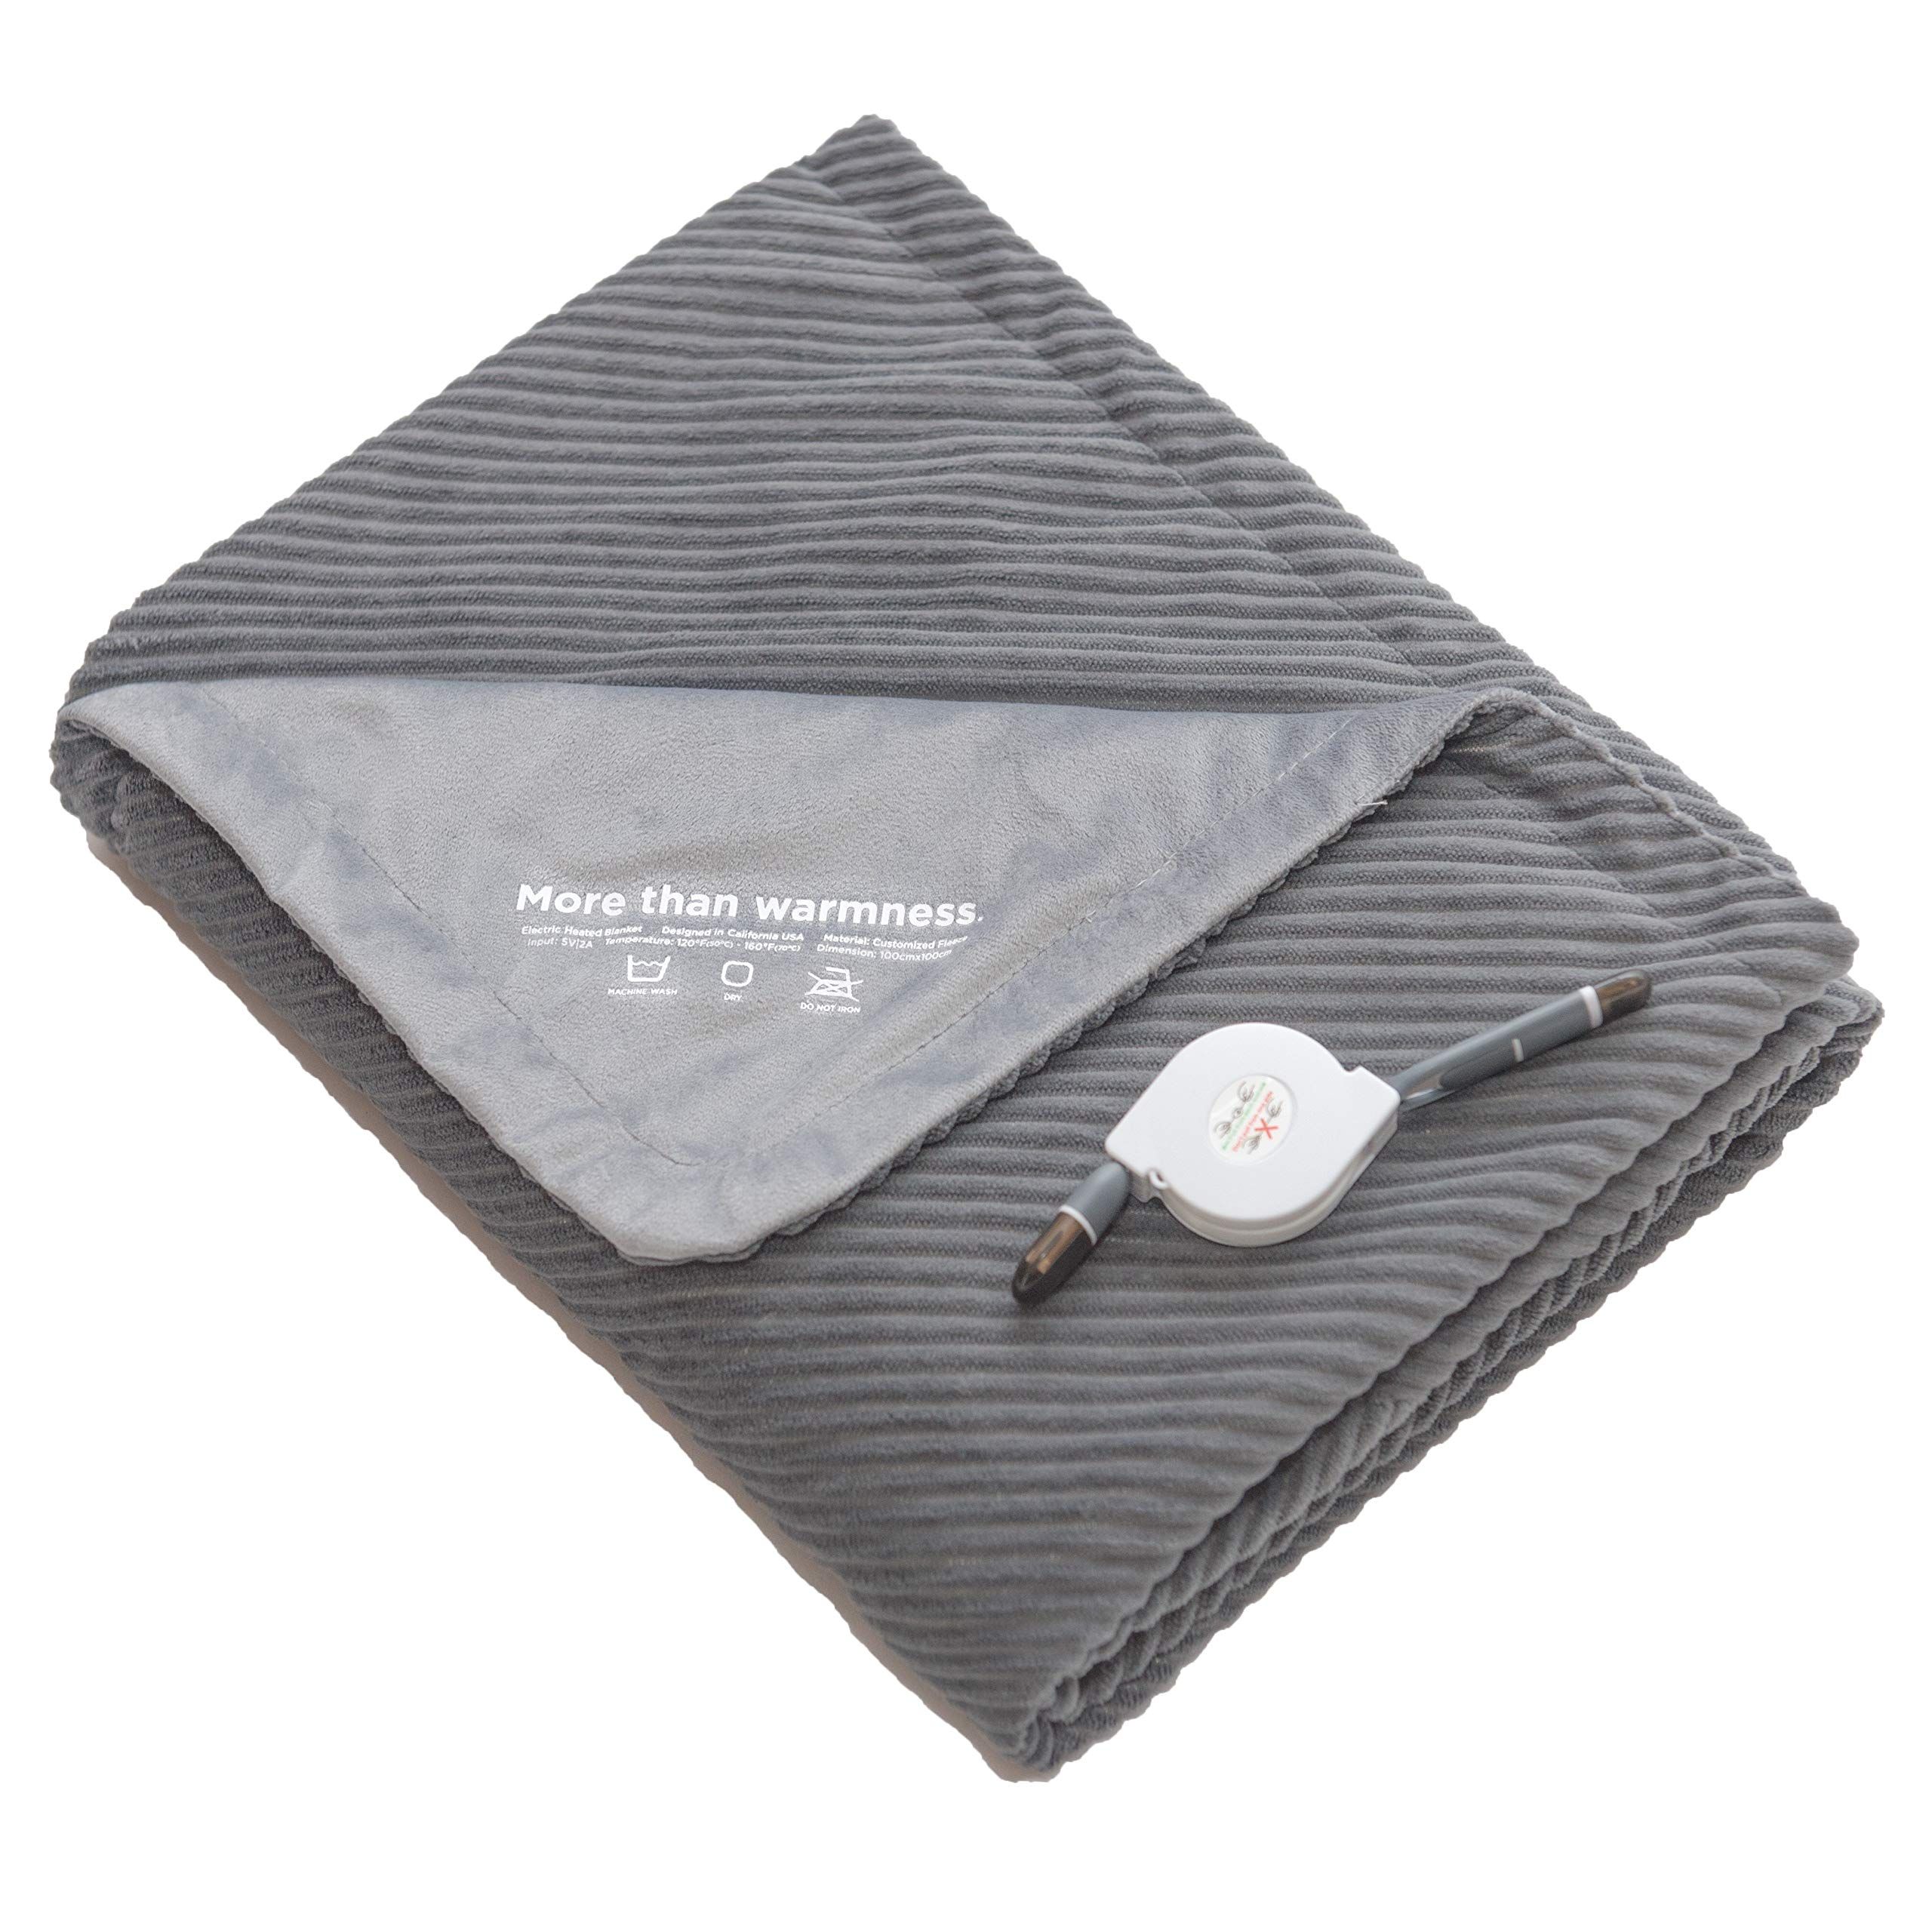 DAWNLAB Super Soft Portable USB Powered Heated Lap Blanket Throw, Suitable for Home, Office, Travel, Outdoor (Above 55°F Only) and Vehicle. Stylish, Safe and Easy to Care.